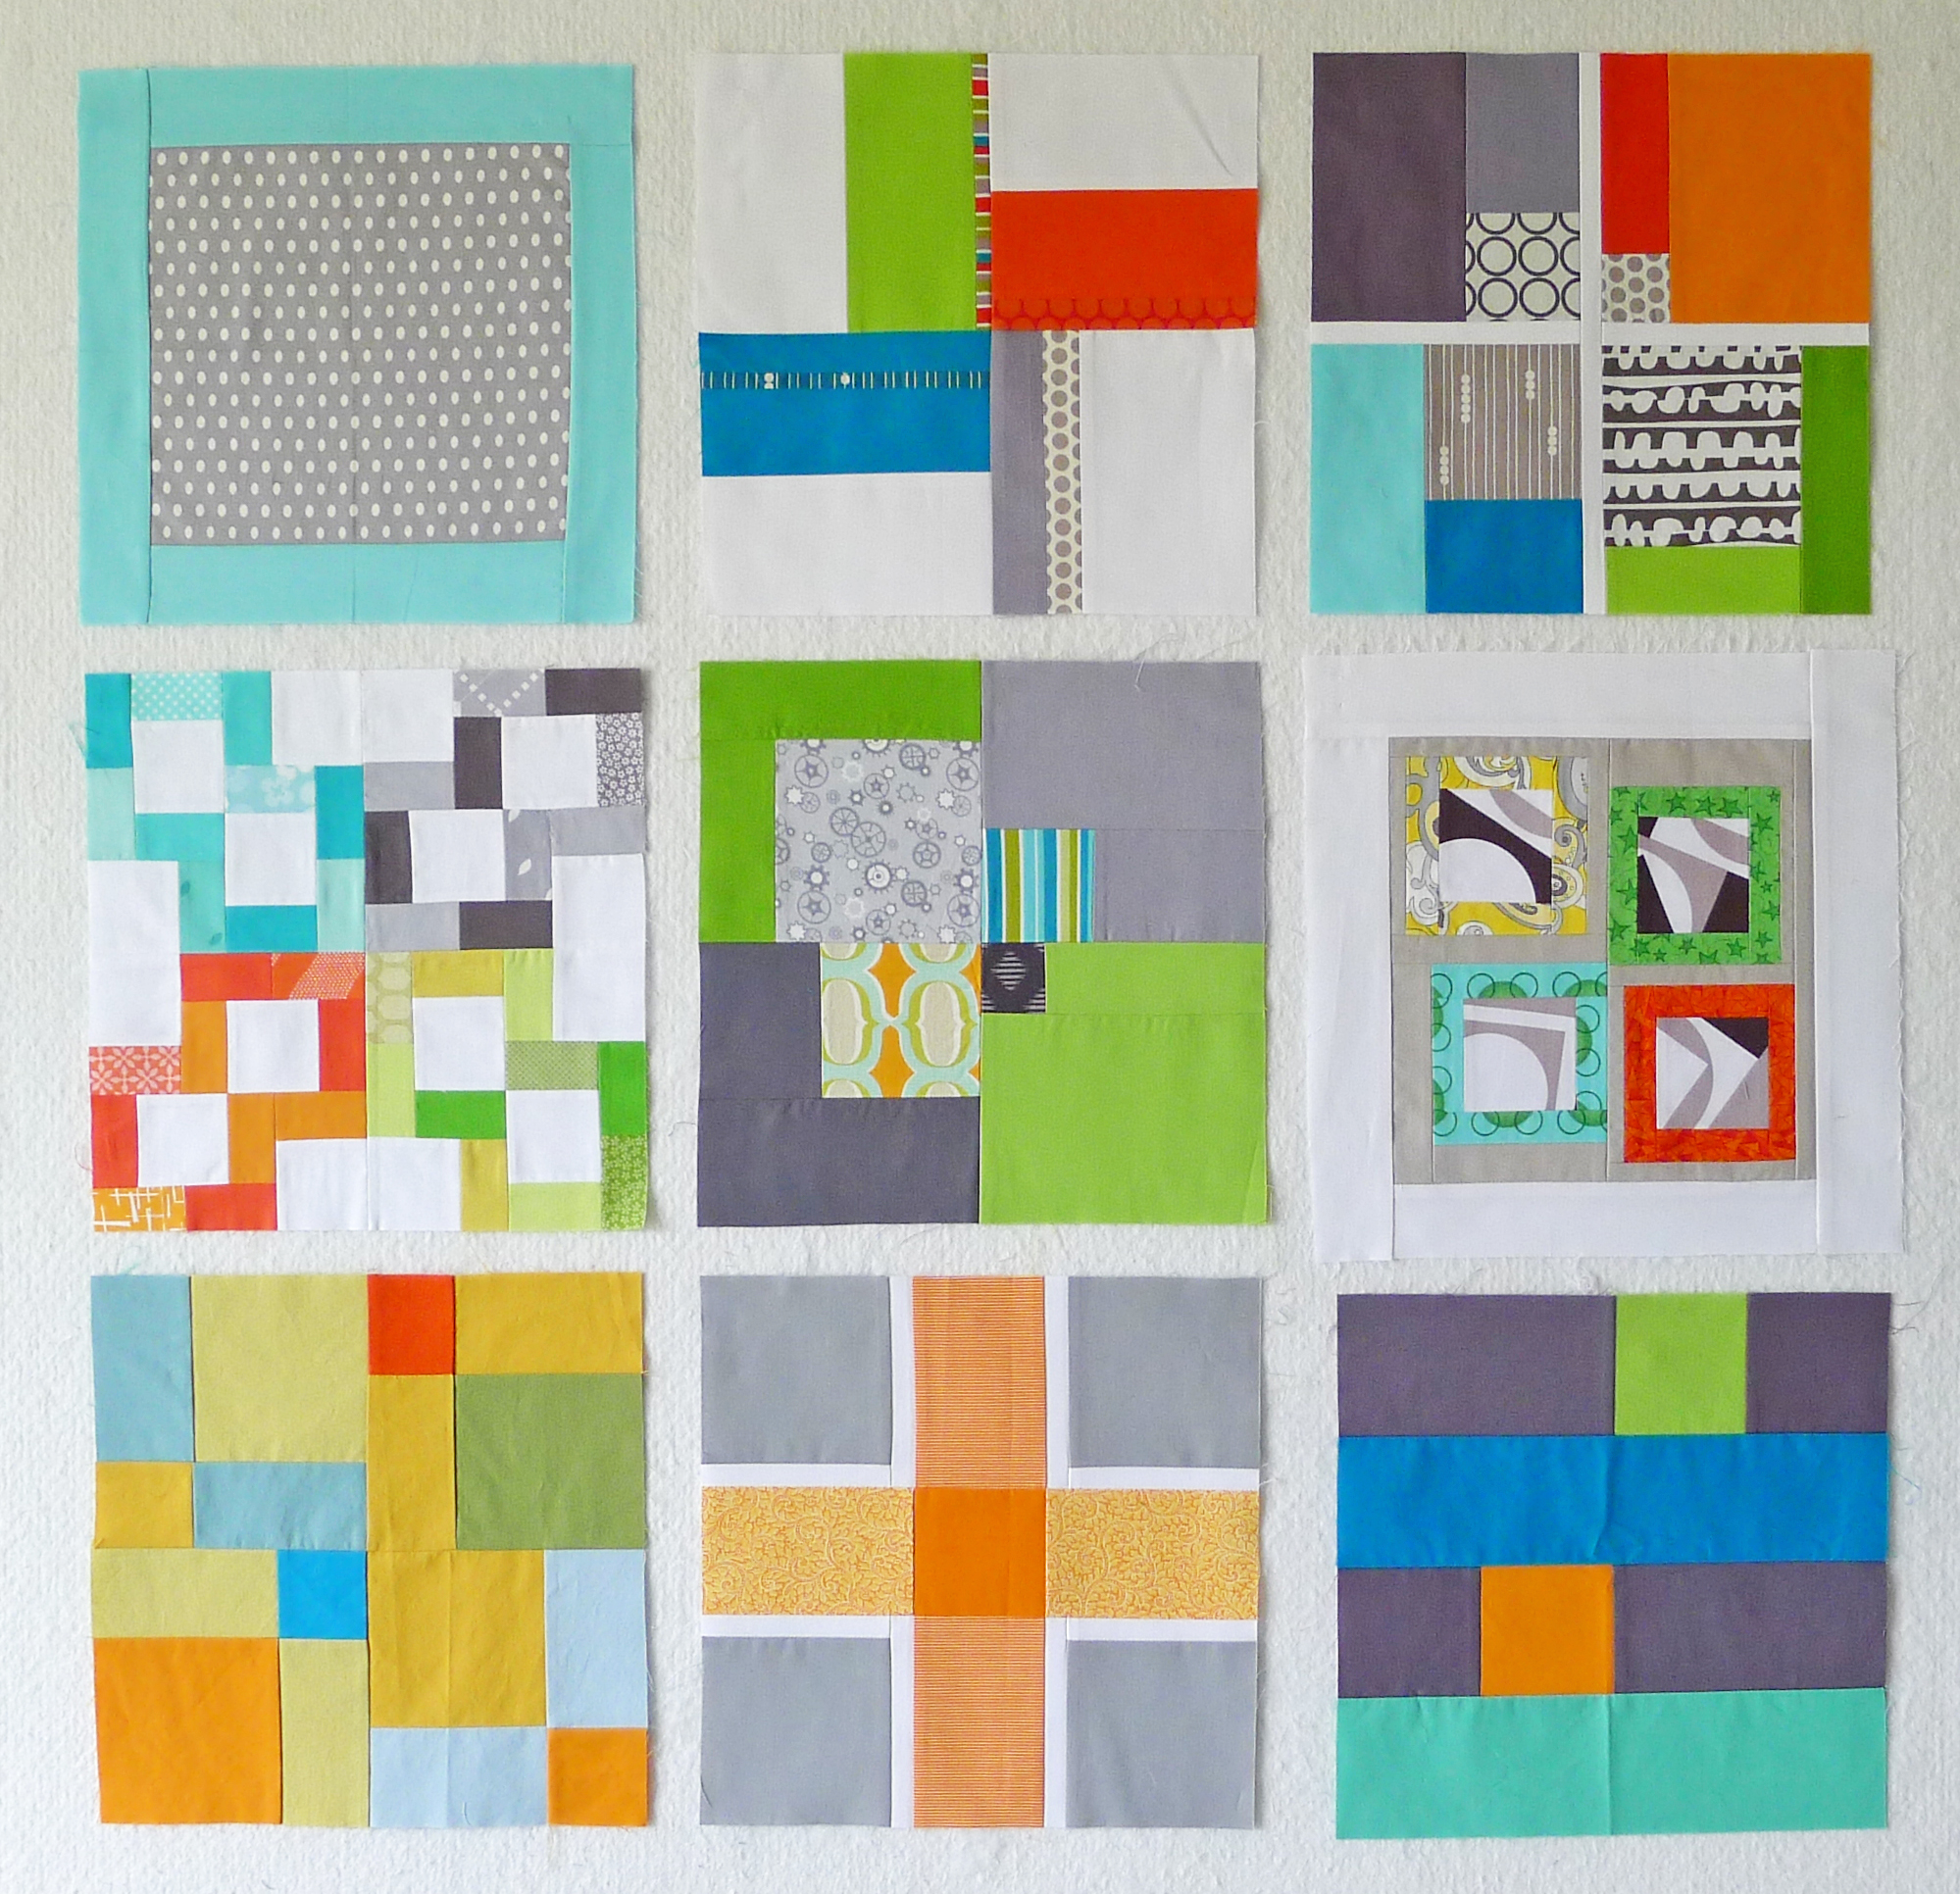 quiltcon block challenge graphic squares rectangles boxes the